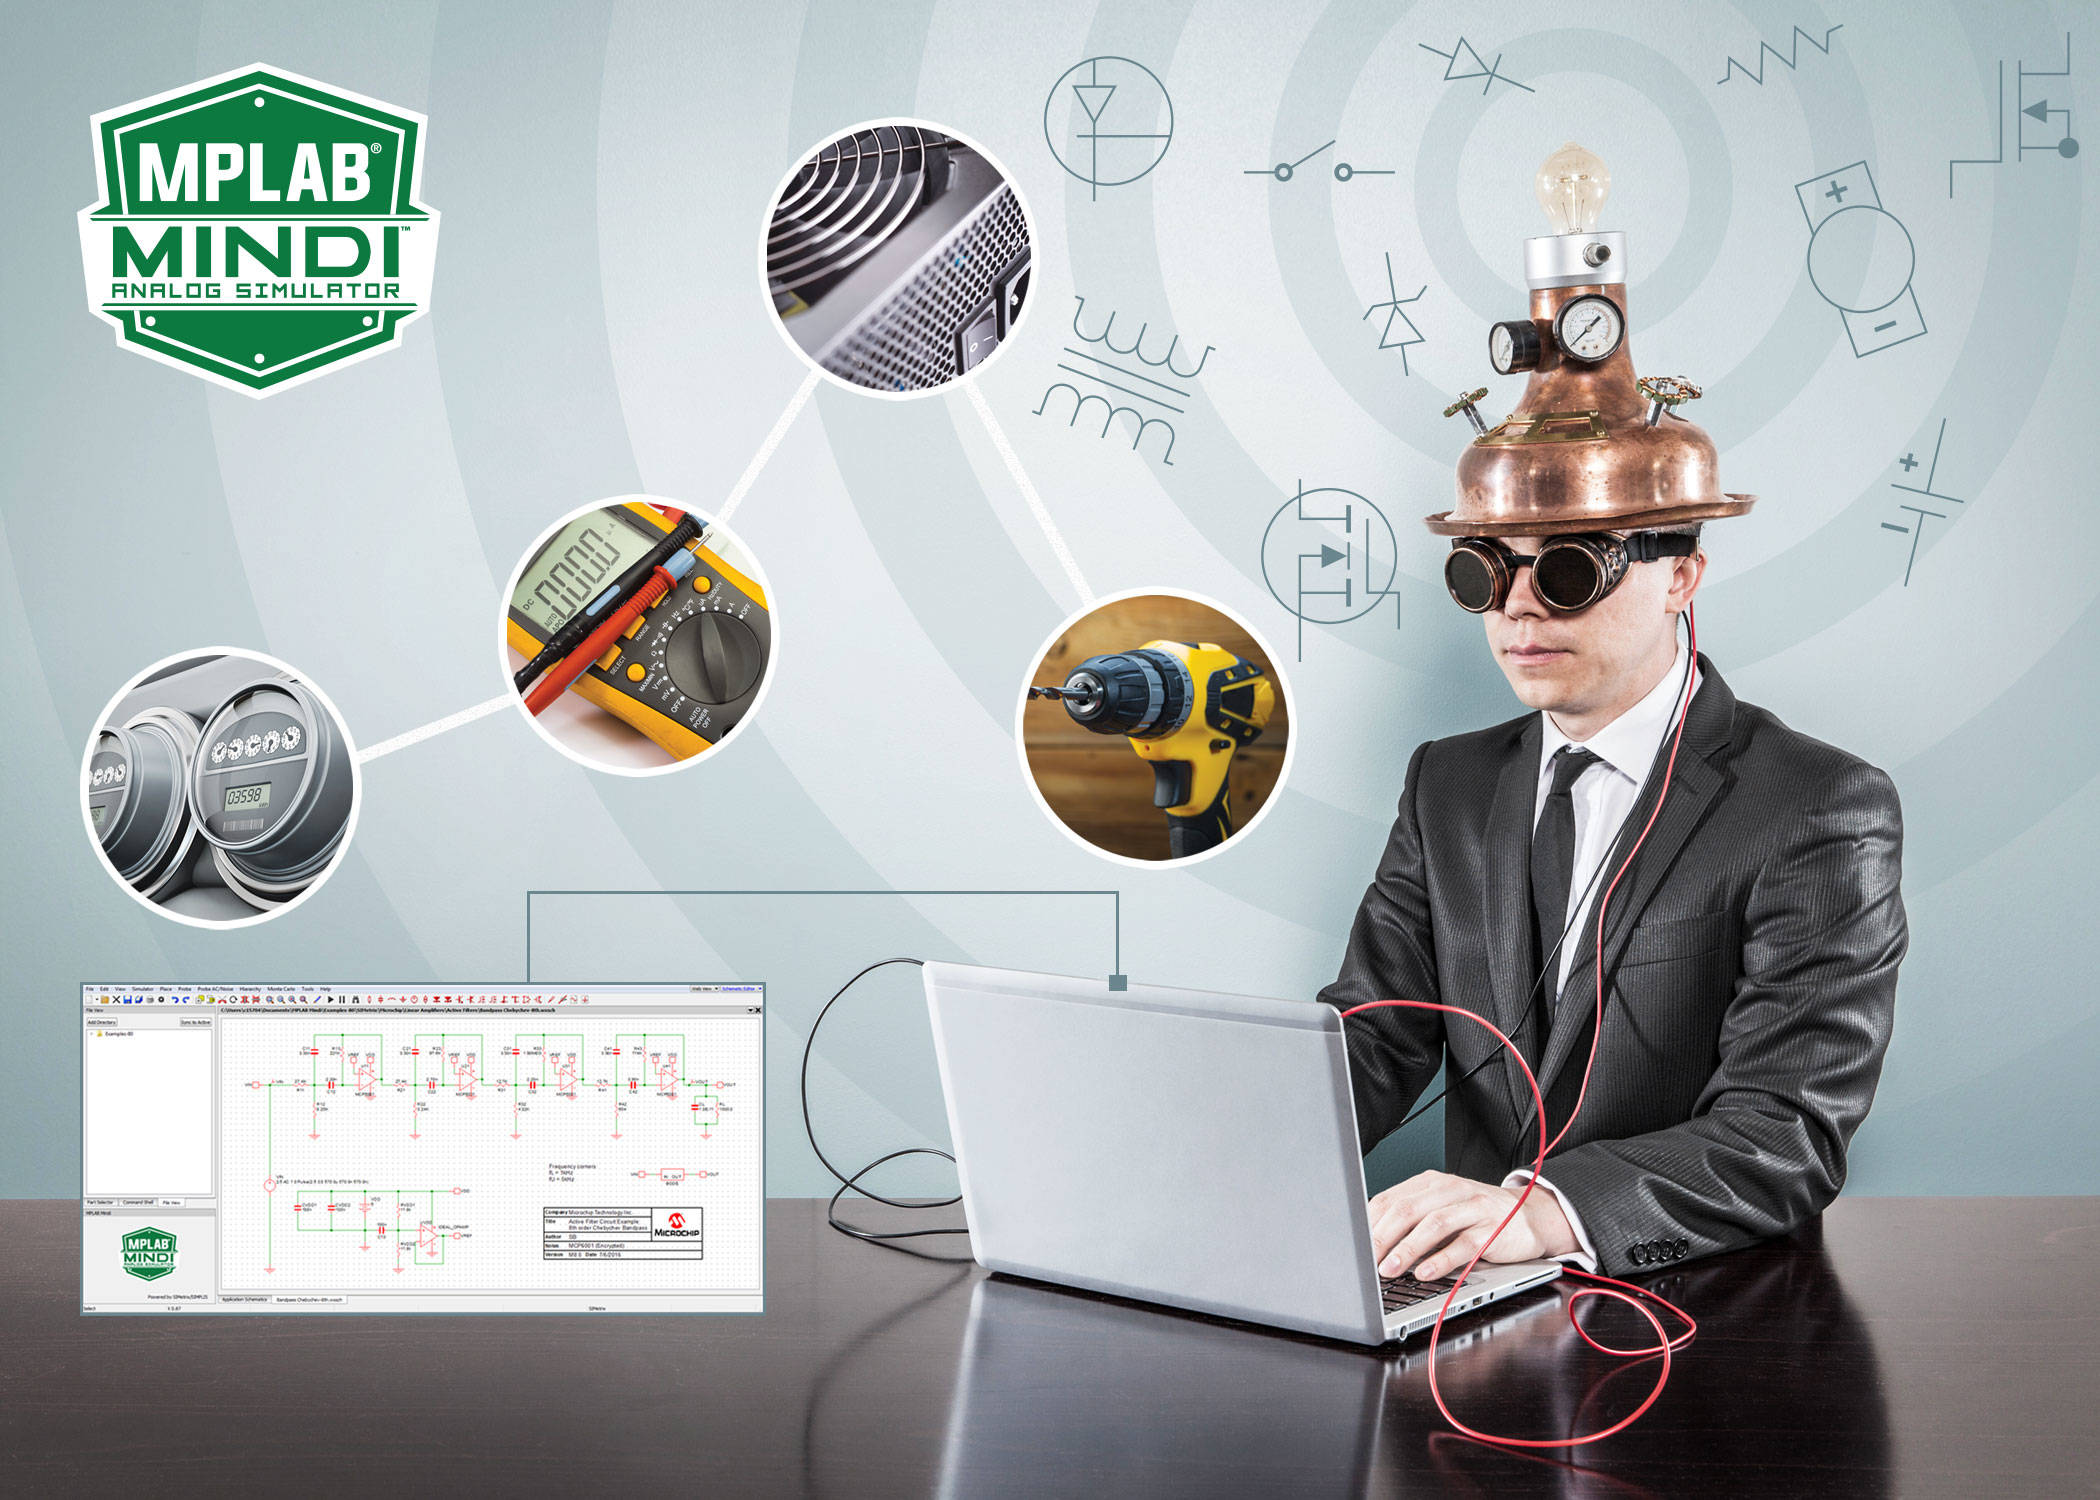 Reduce Risk And Time To Market With Microchips Mplab Mindi Circuit Simulator For Analog Digital Mcu Mixed Simulation 170915 Apid Pr 7x5